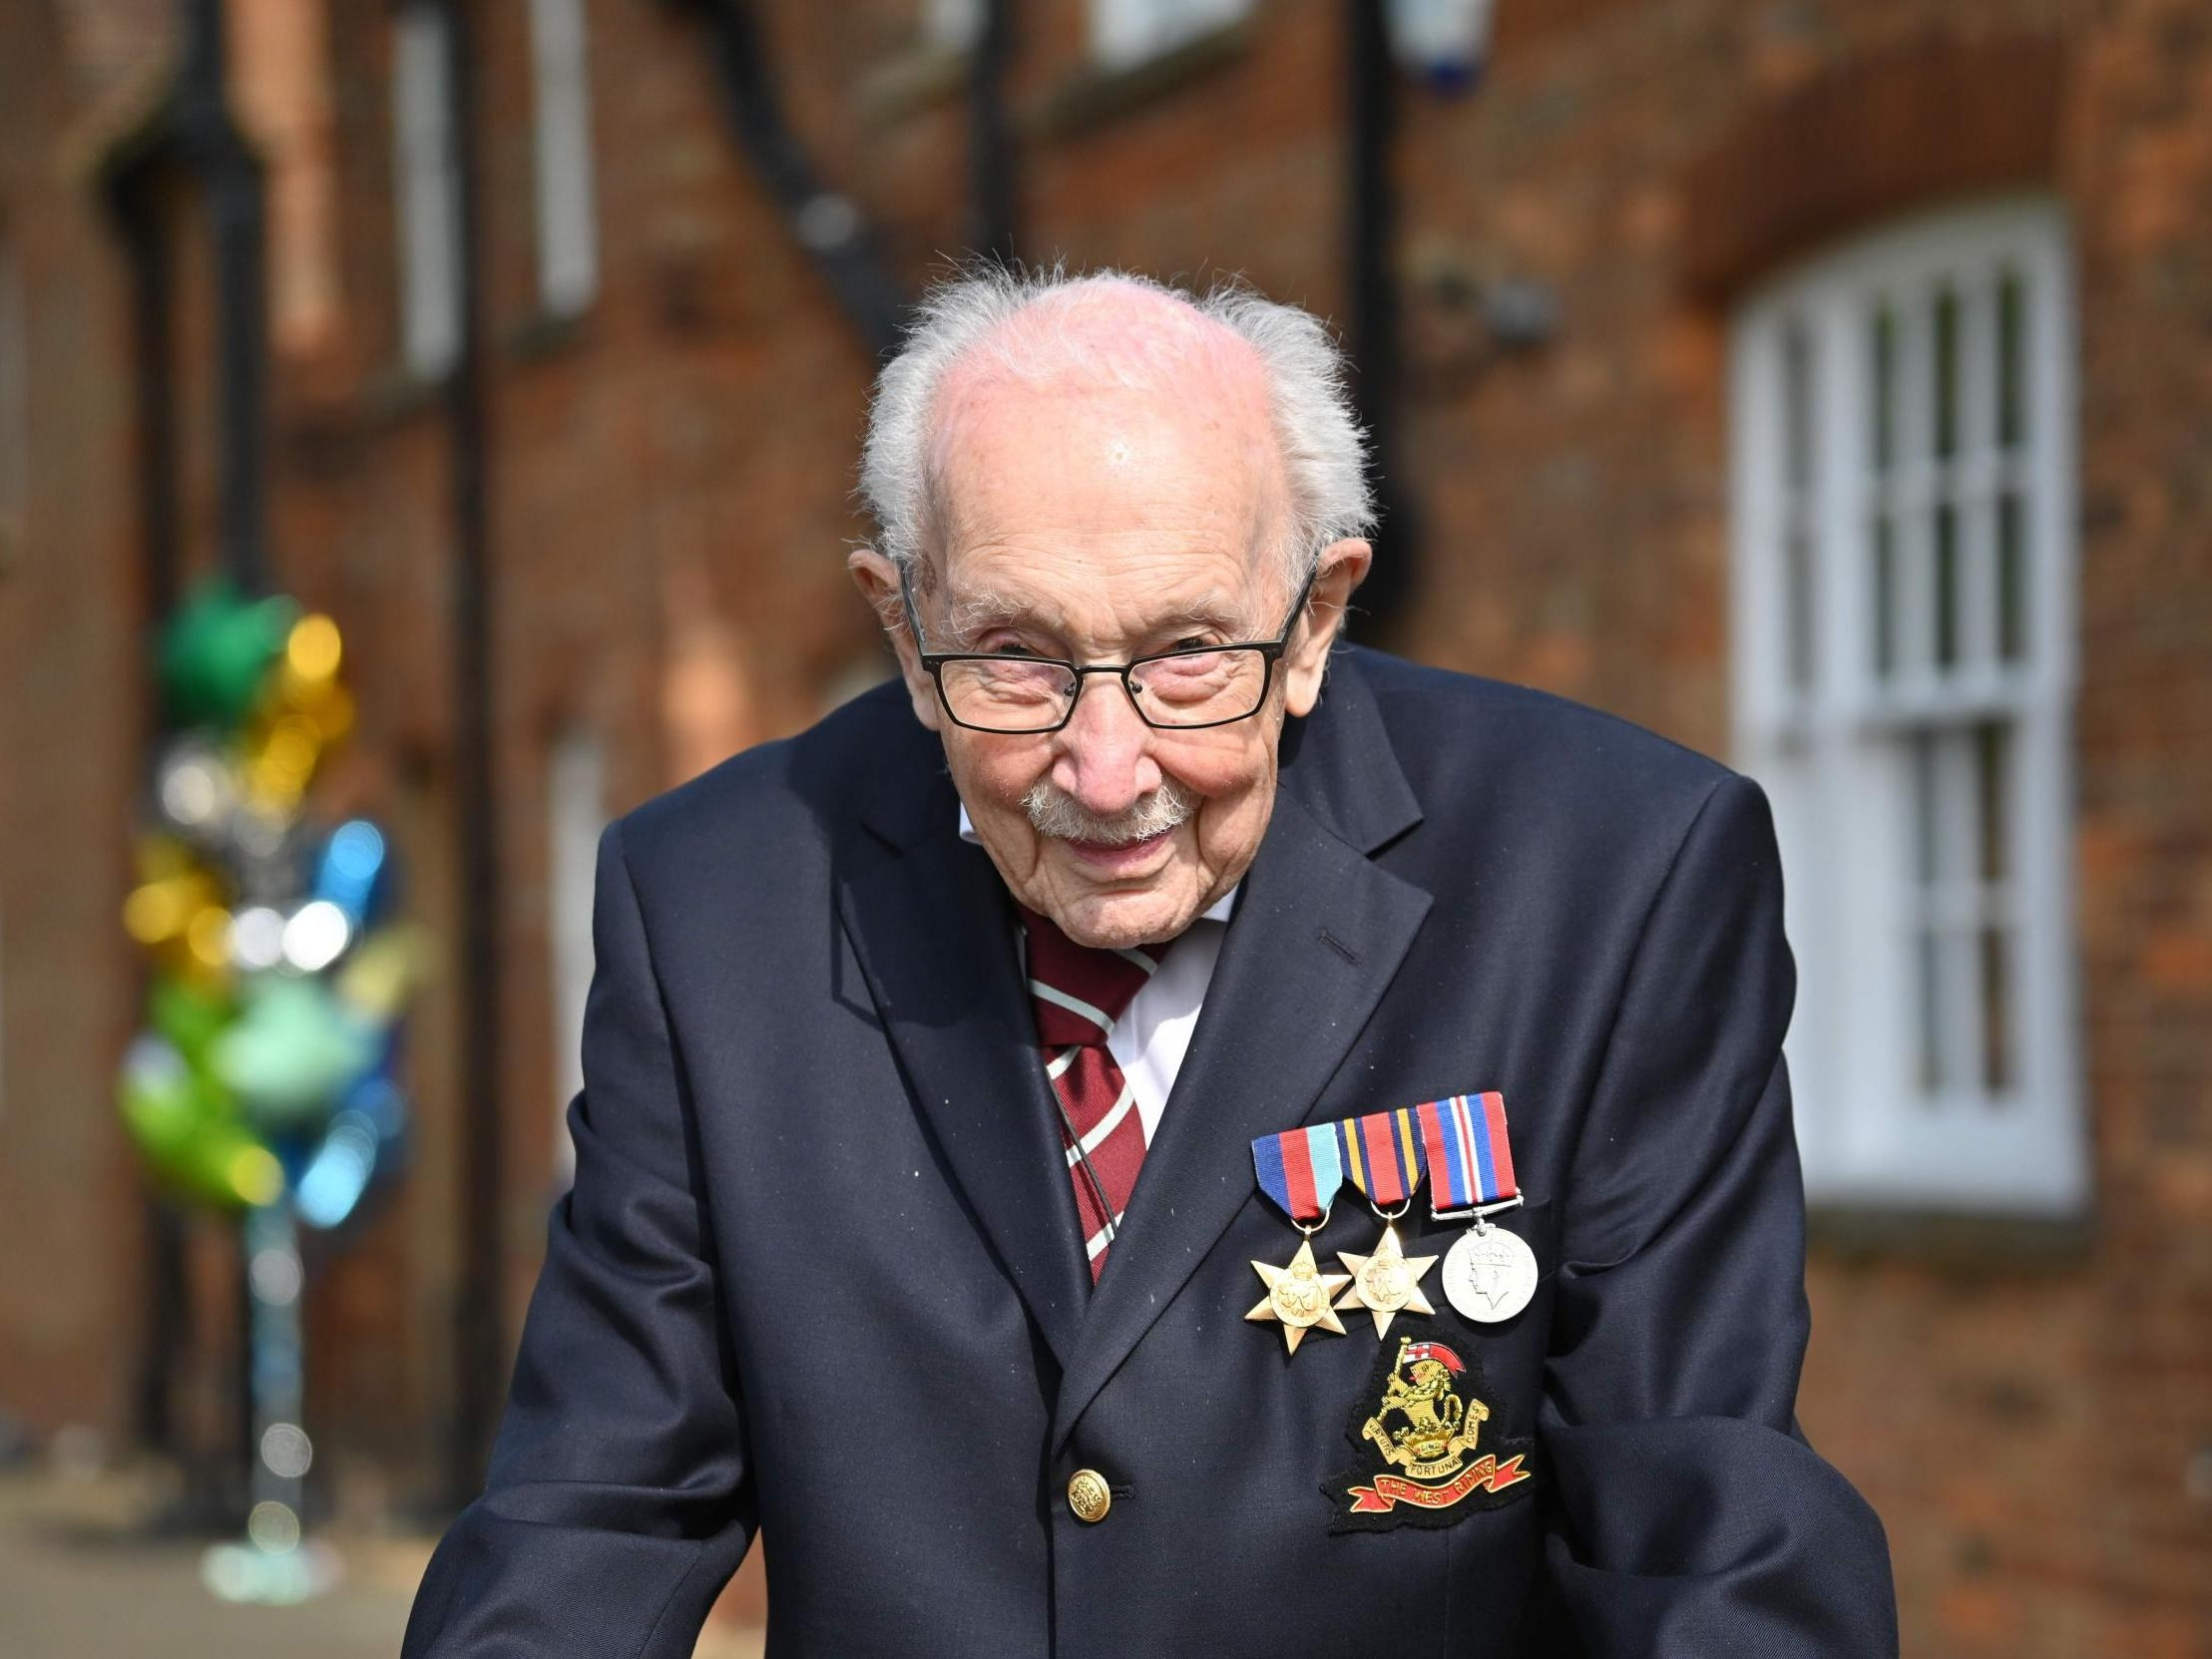 Tower Hamlets Council pays tribute to national treasure Captain Sir Tom Moore